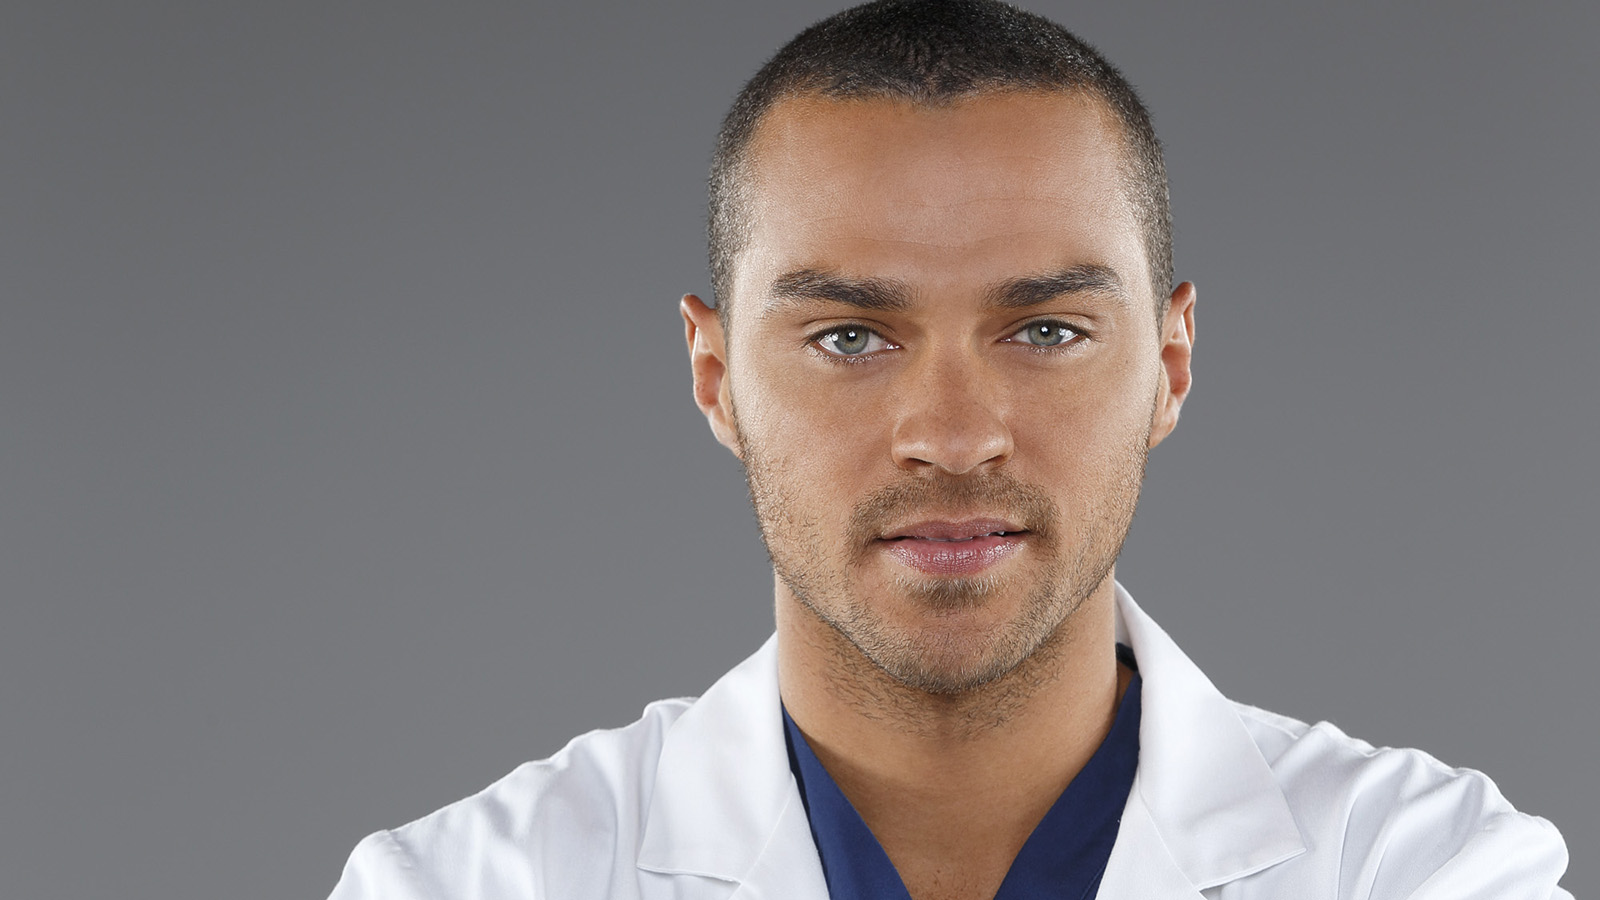 jesse williams computer background 1400